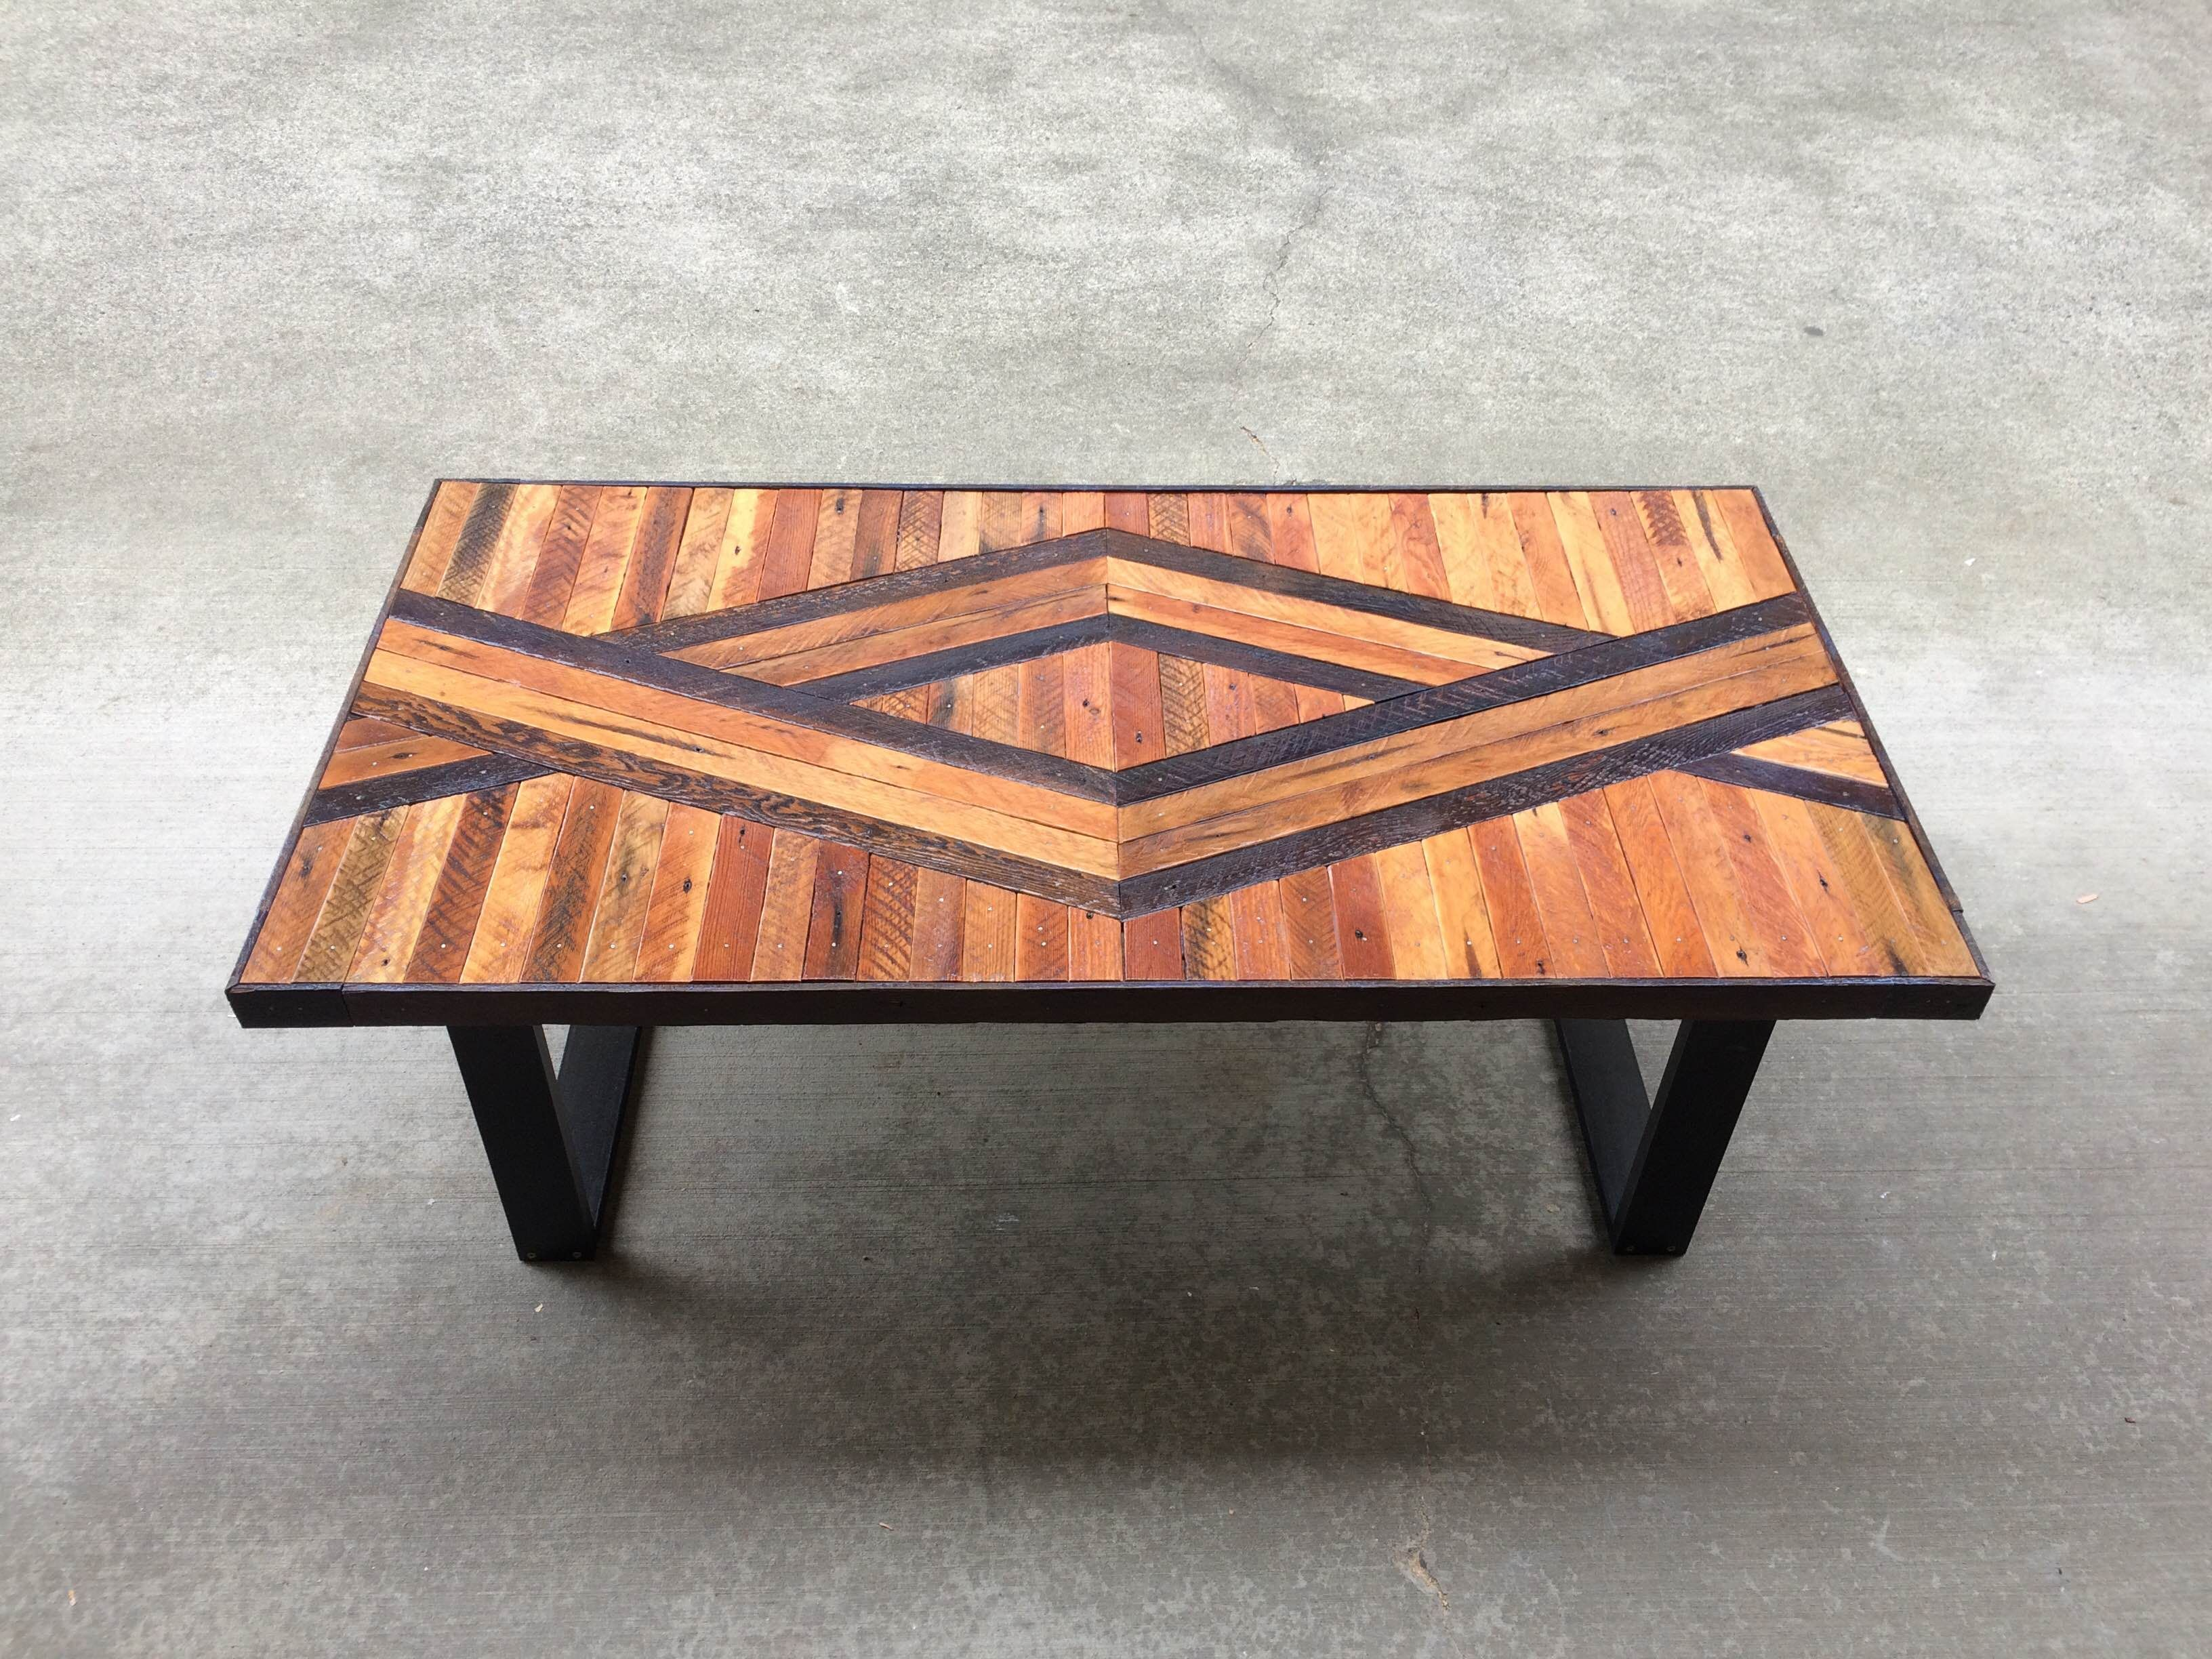 Wood table top design - Find This Pin And More On Wood Table Tops